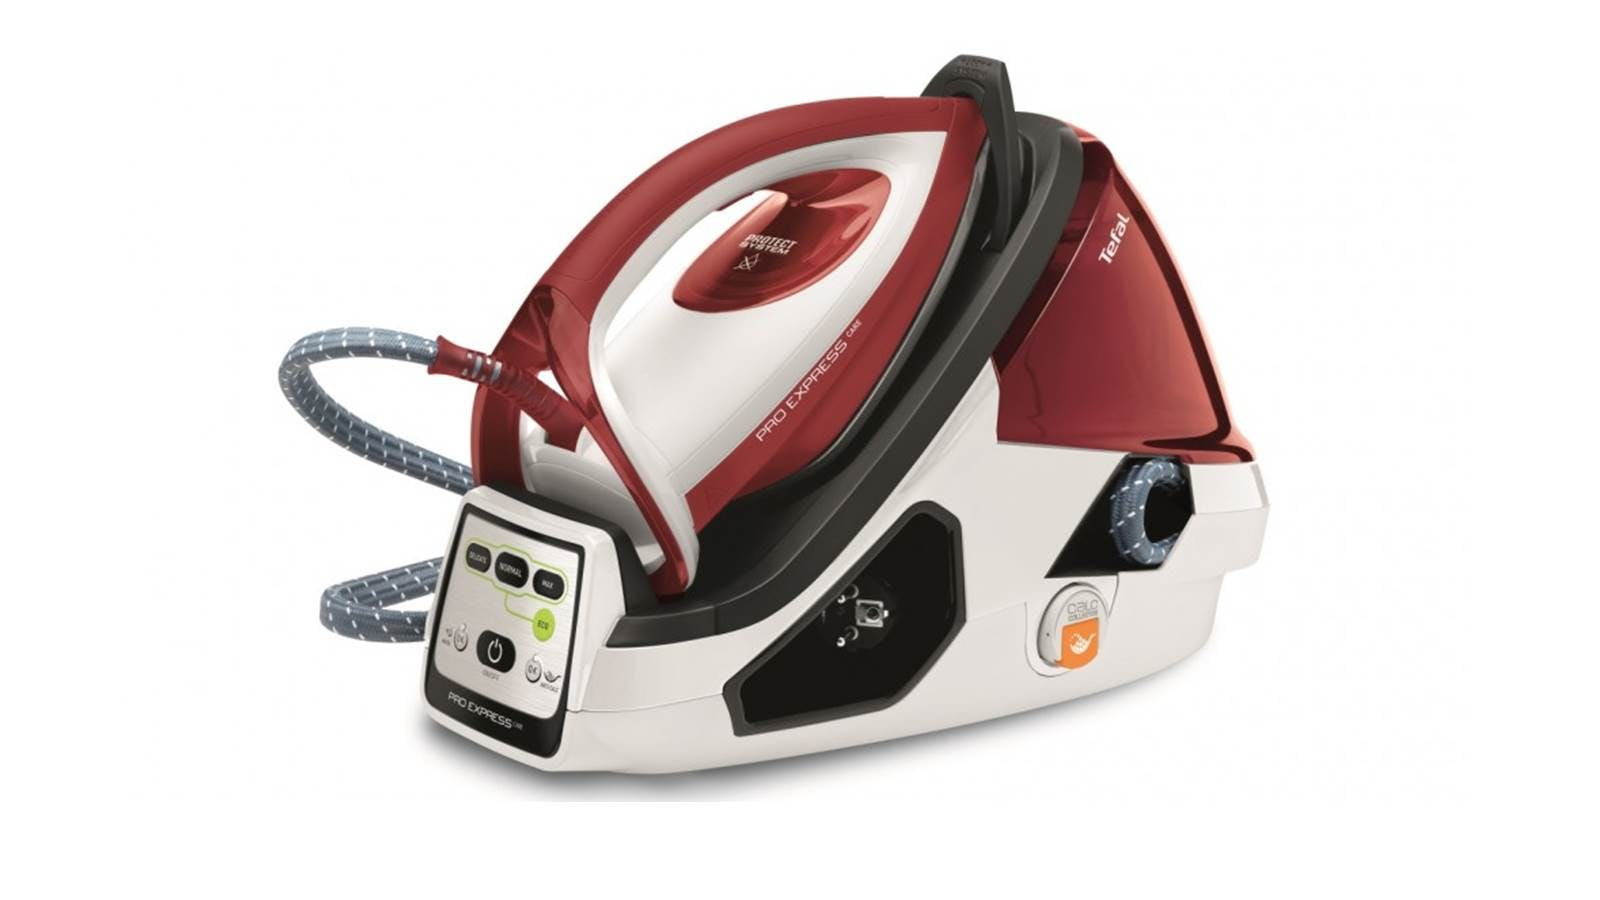 Tefal Pro Express Care Gv9061 Steam Generator Harvey